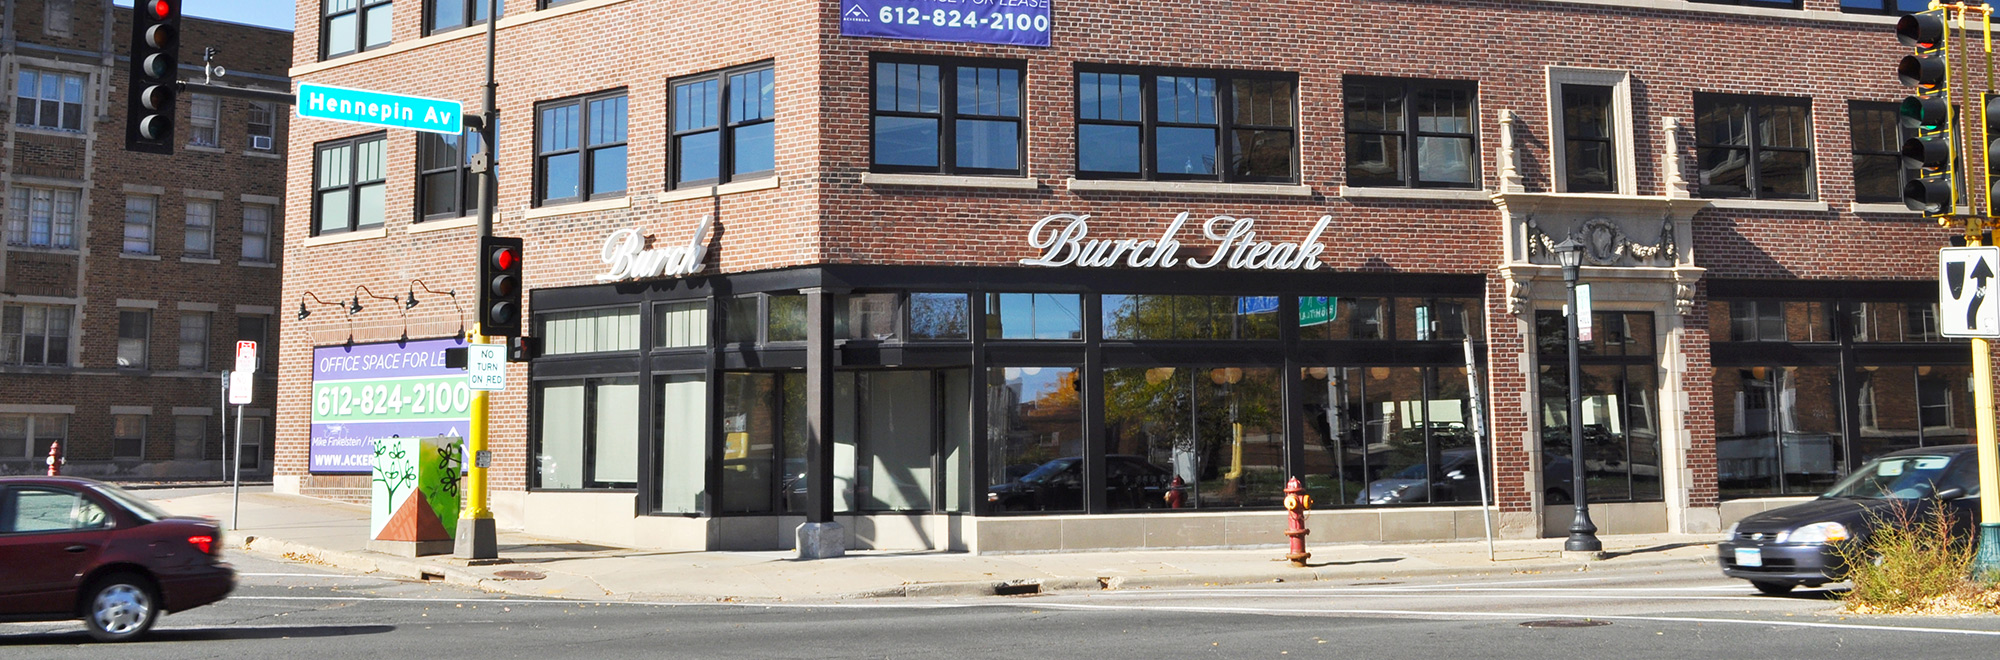 Burch Steak and Pizza Bar